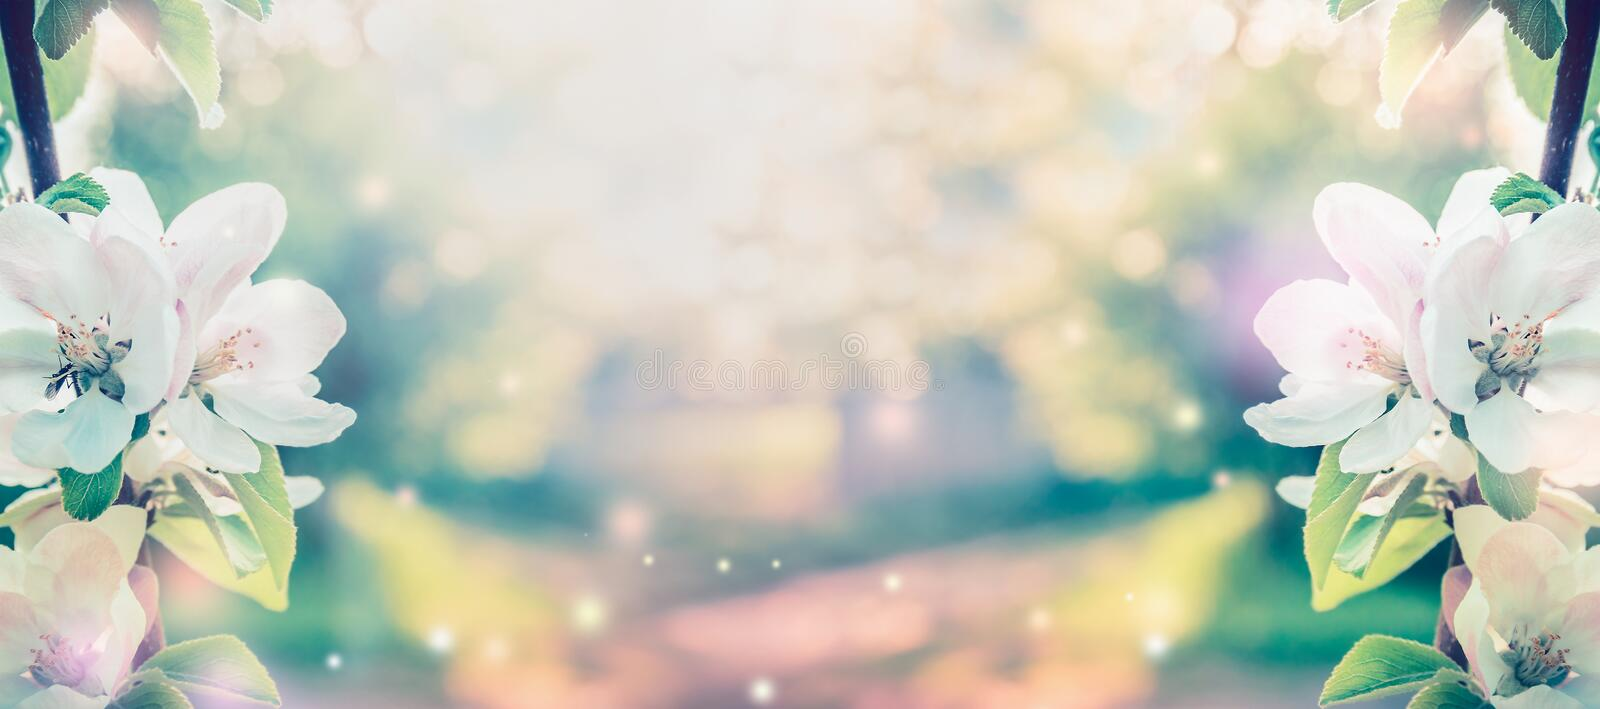 Spring blossom over blurred nature background with sunshine, banner. stock images